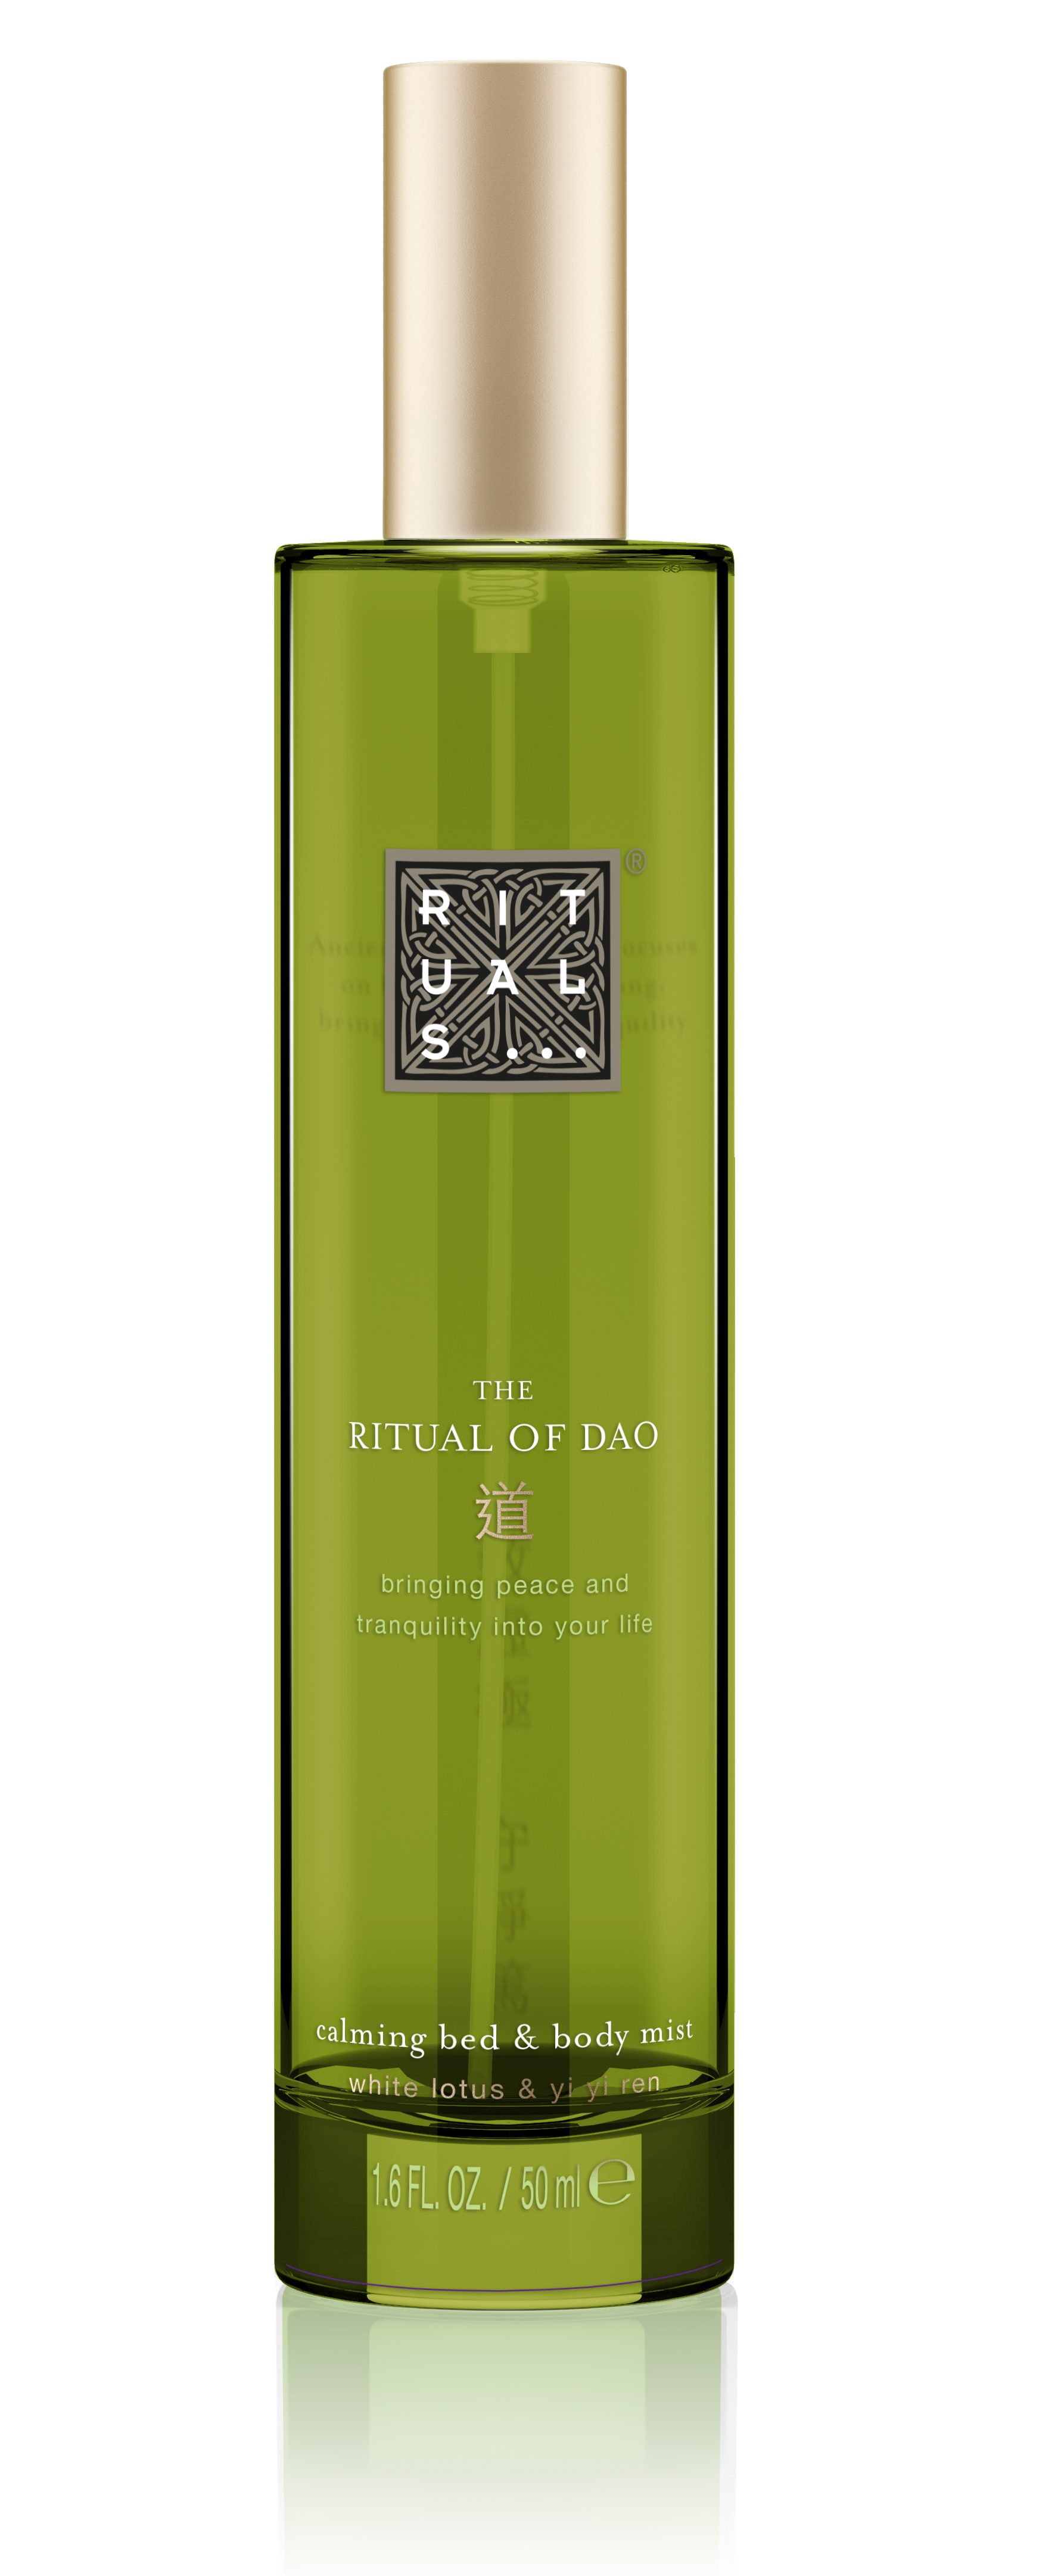 4552-014552 The Ritual of Dao Calming Bed & Body Mist PRO